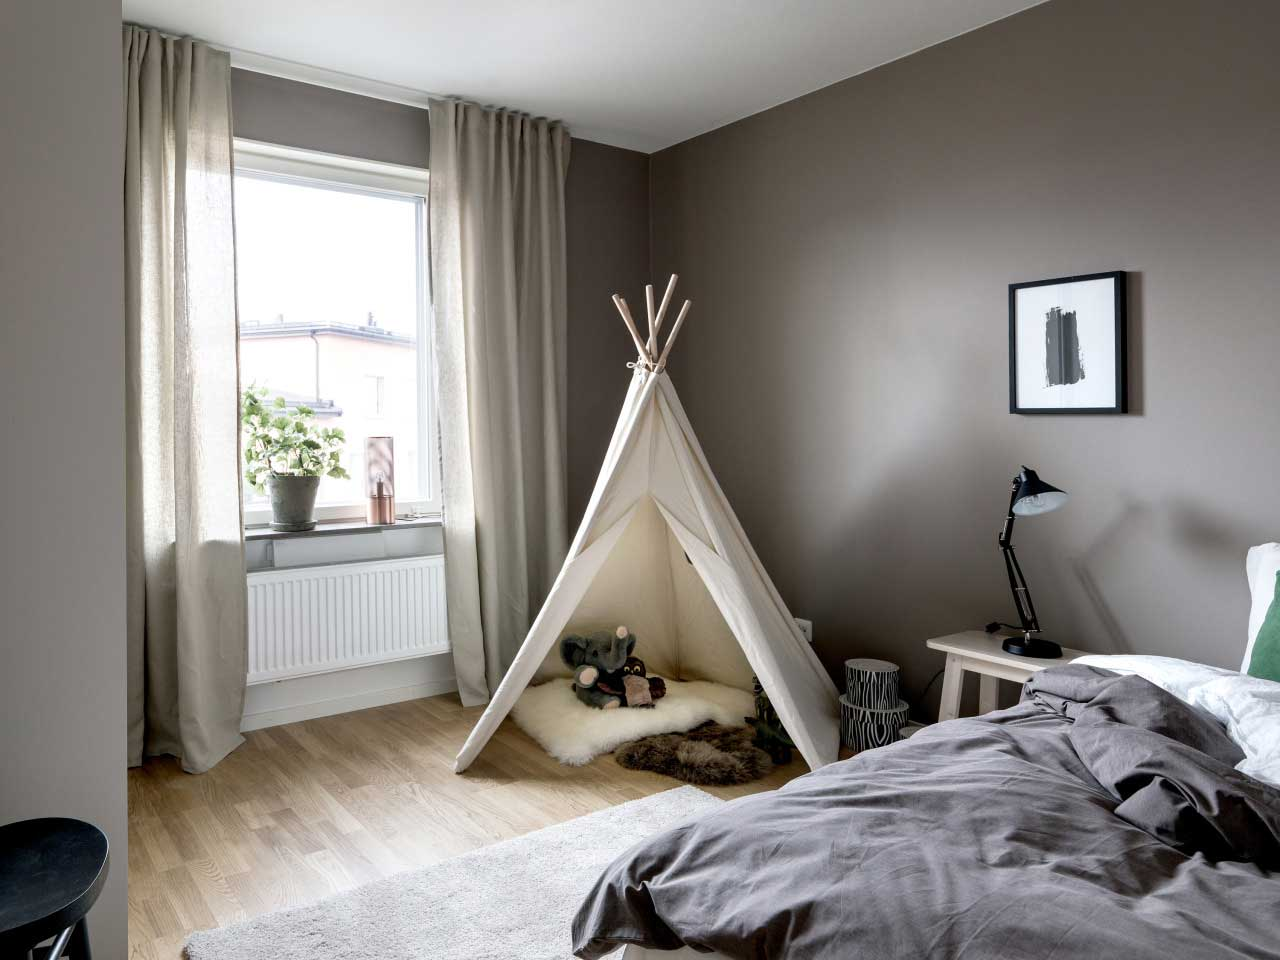 How To Make A Small Room Look Bigger 6 Sneaky Ways To Make A Small Urban Apartment Look Bigger